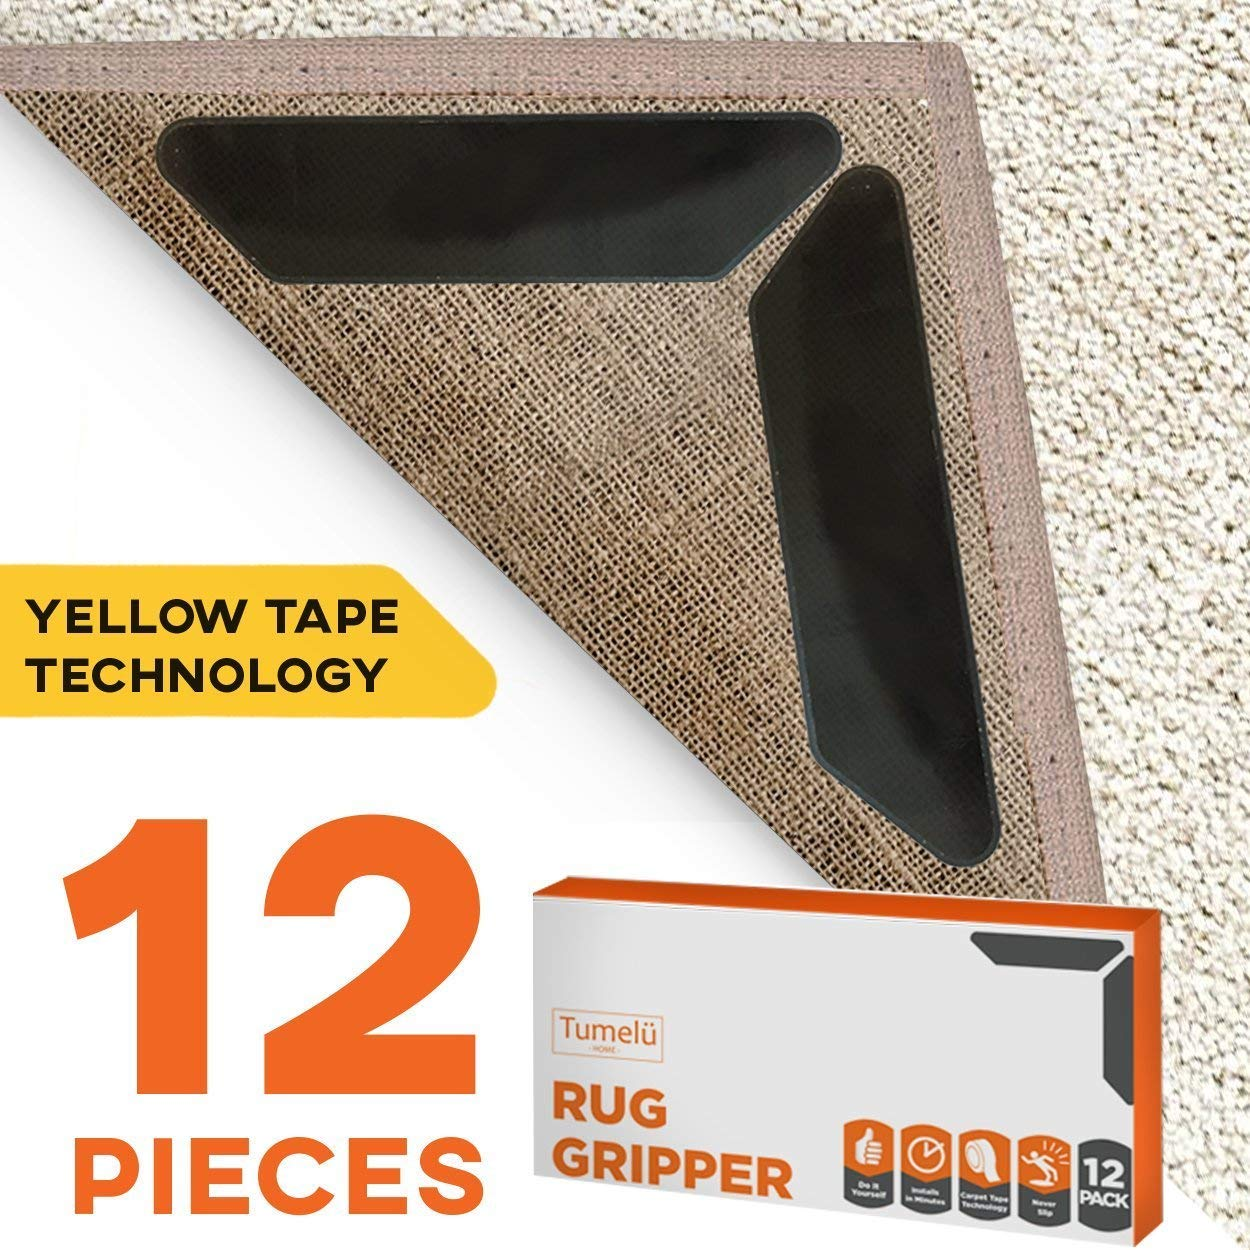 KF 12pc Premium Large Size Anti Curling Carpet Tape Rug Gripper 2X Adhesive Advanced with Yellow Capet Tape Will Keep Rug in Place /& Keep Corners Flat Double Sided Reusable